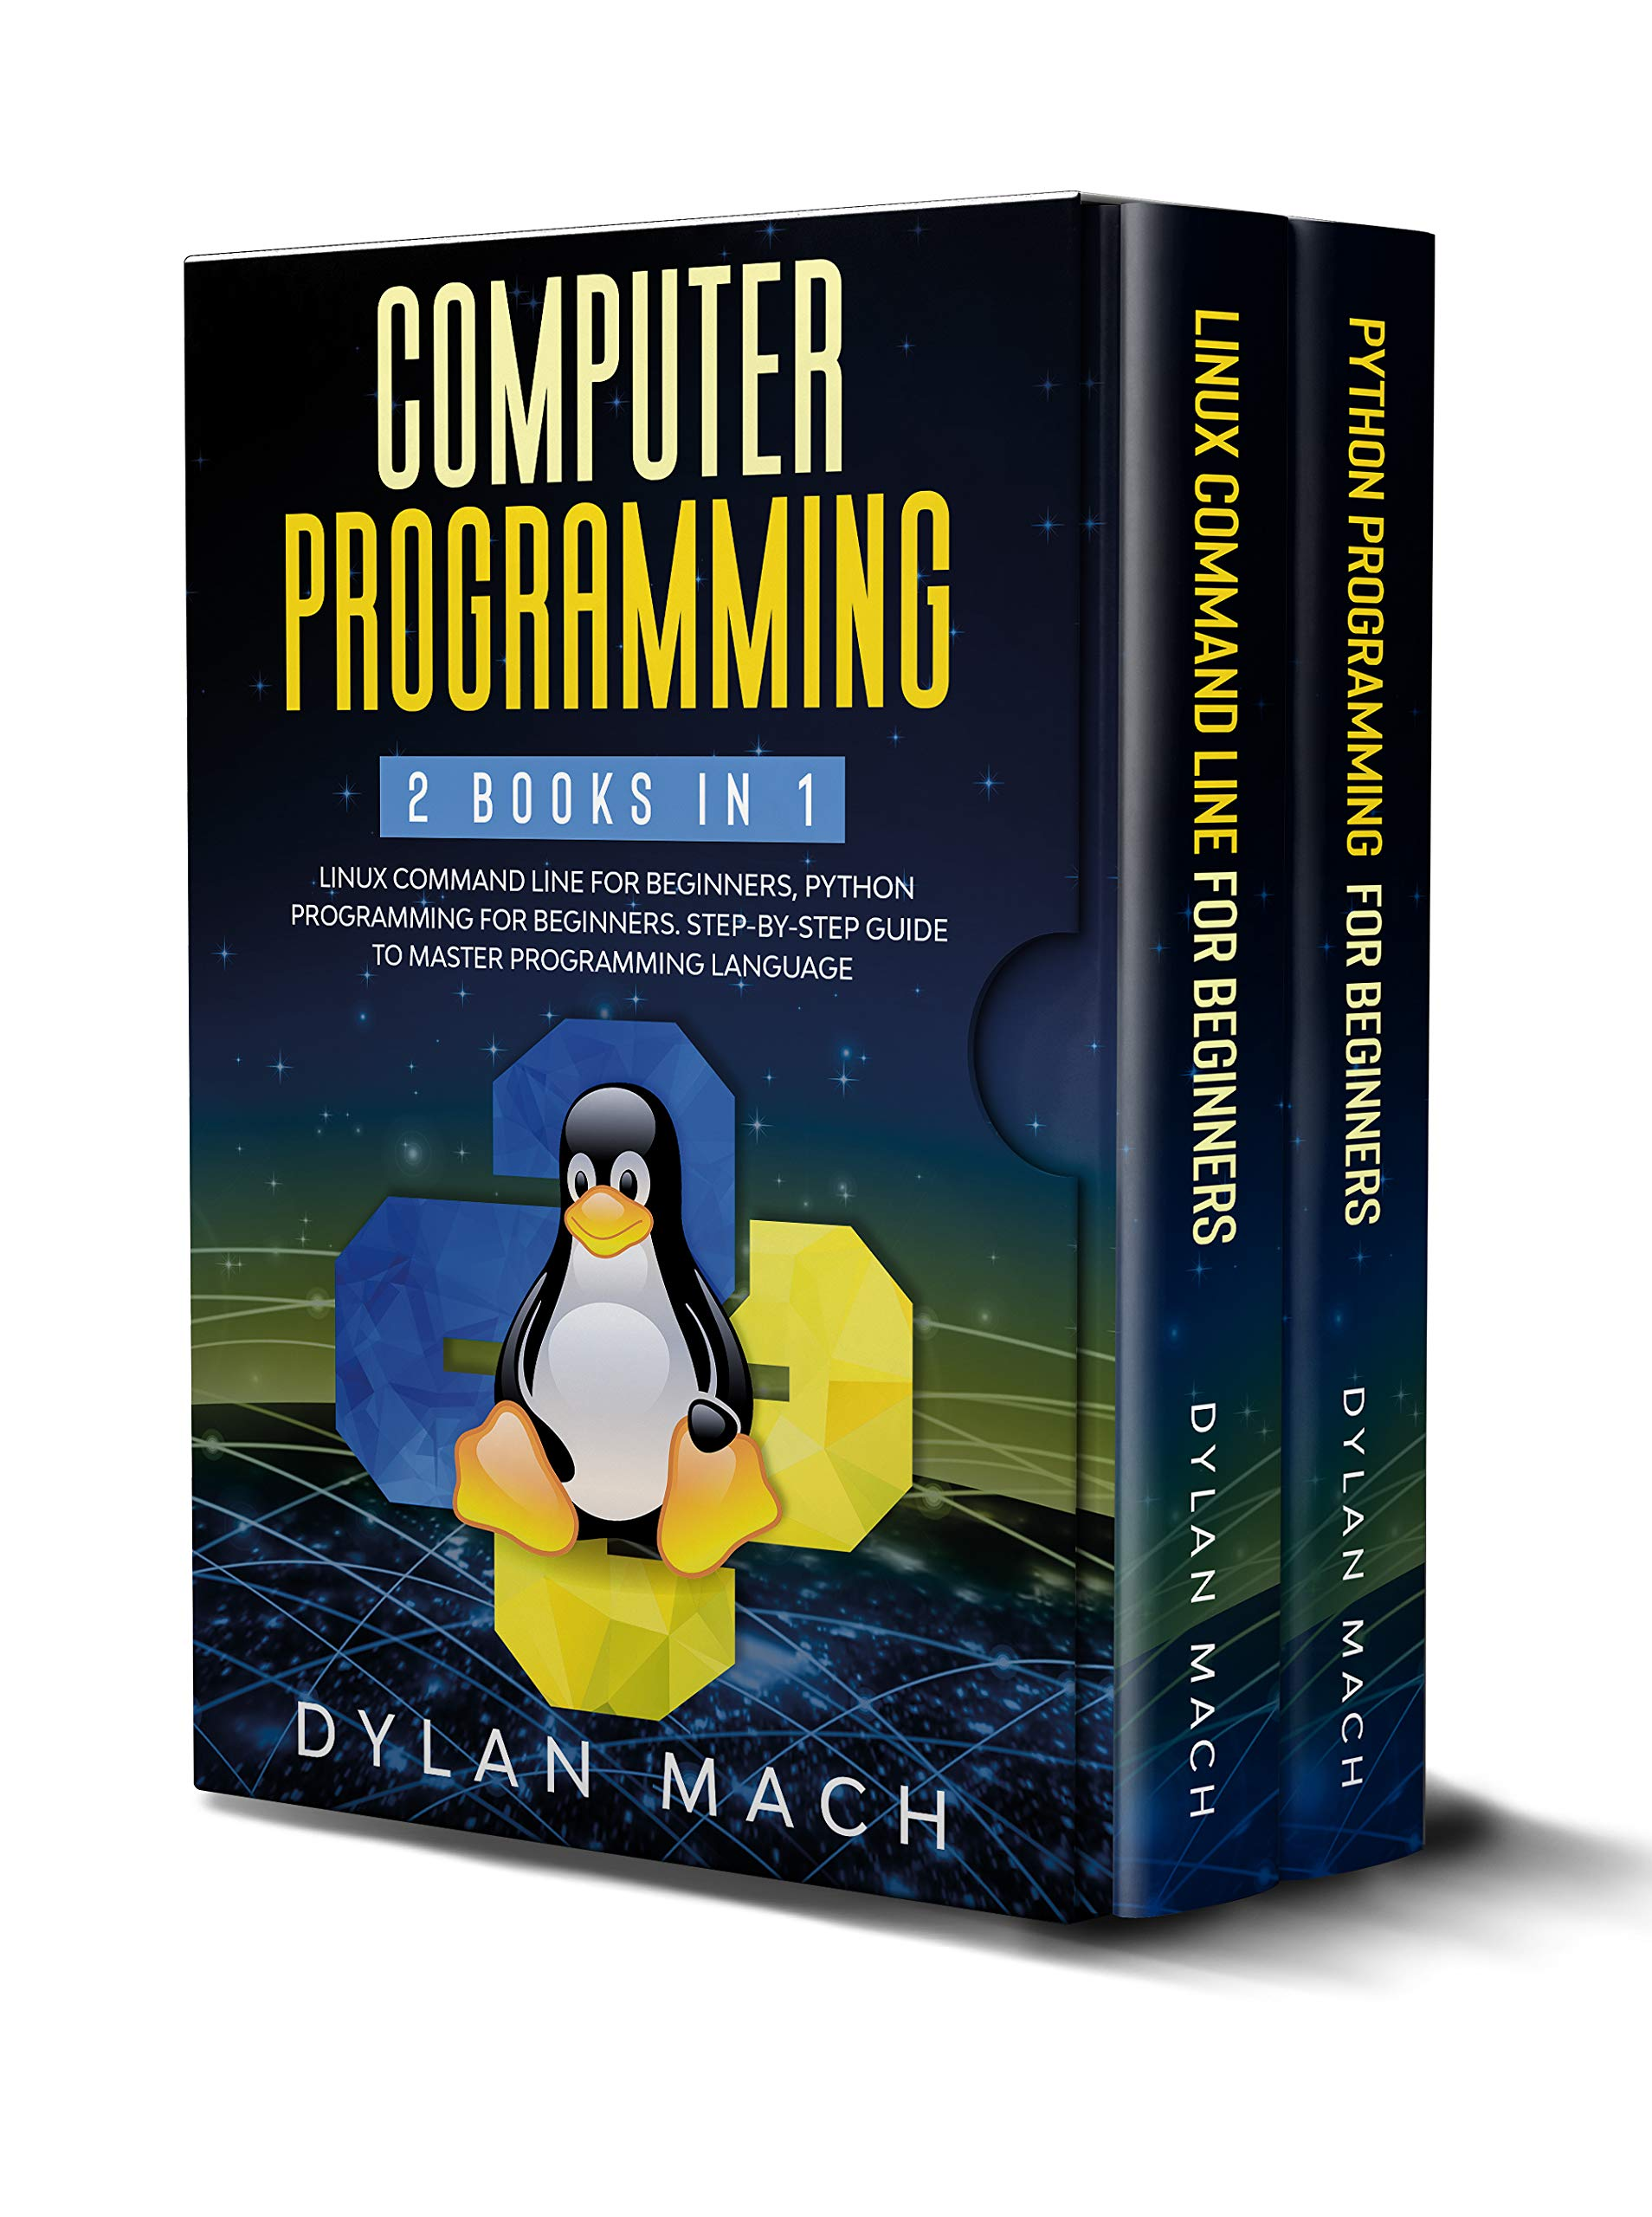 Computer Programming: 2 books in 1: LINUX COMMAND LINE For Beginners, PYTHON Programming For Beginners. Step-by-Step Guide to master Programming Language